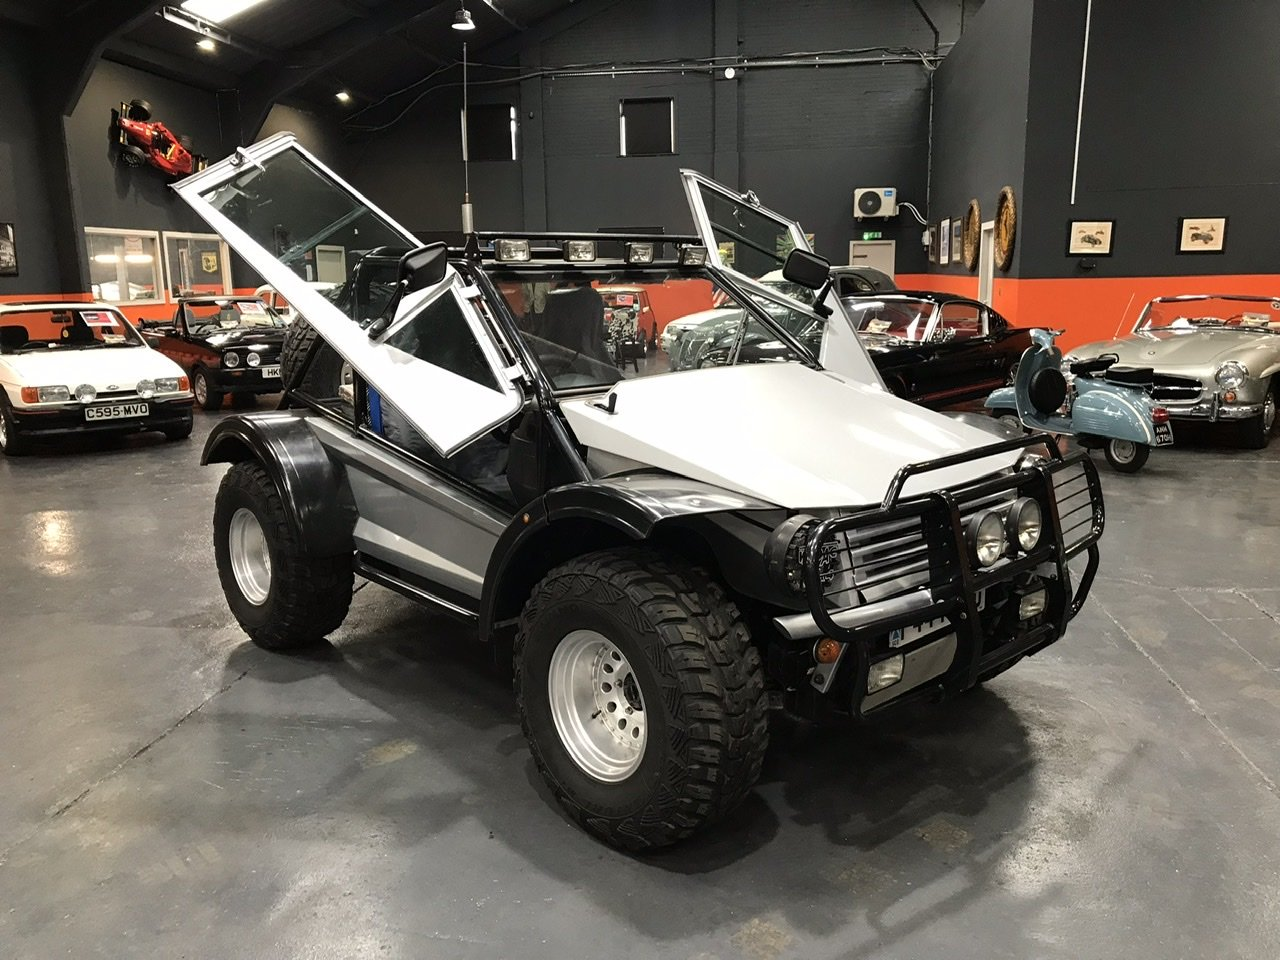 1996 Suzuki Outbak buggy immaculate and very rare For Sale (picture 1 of 6)